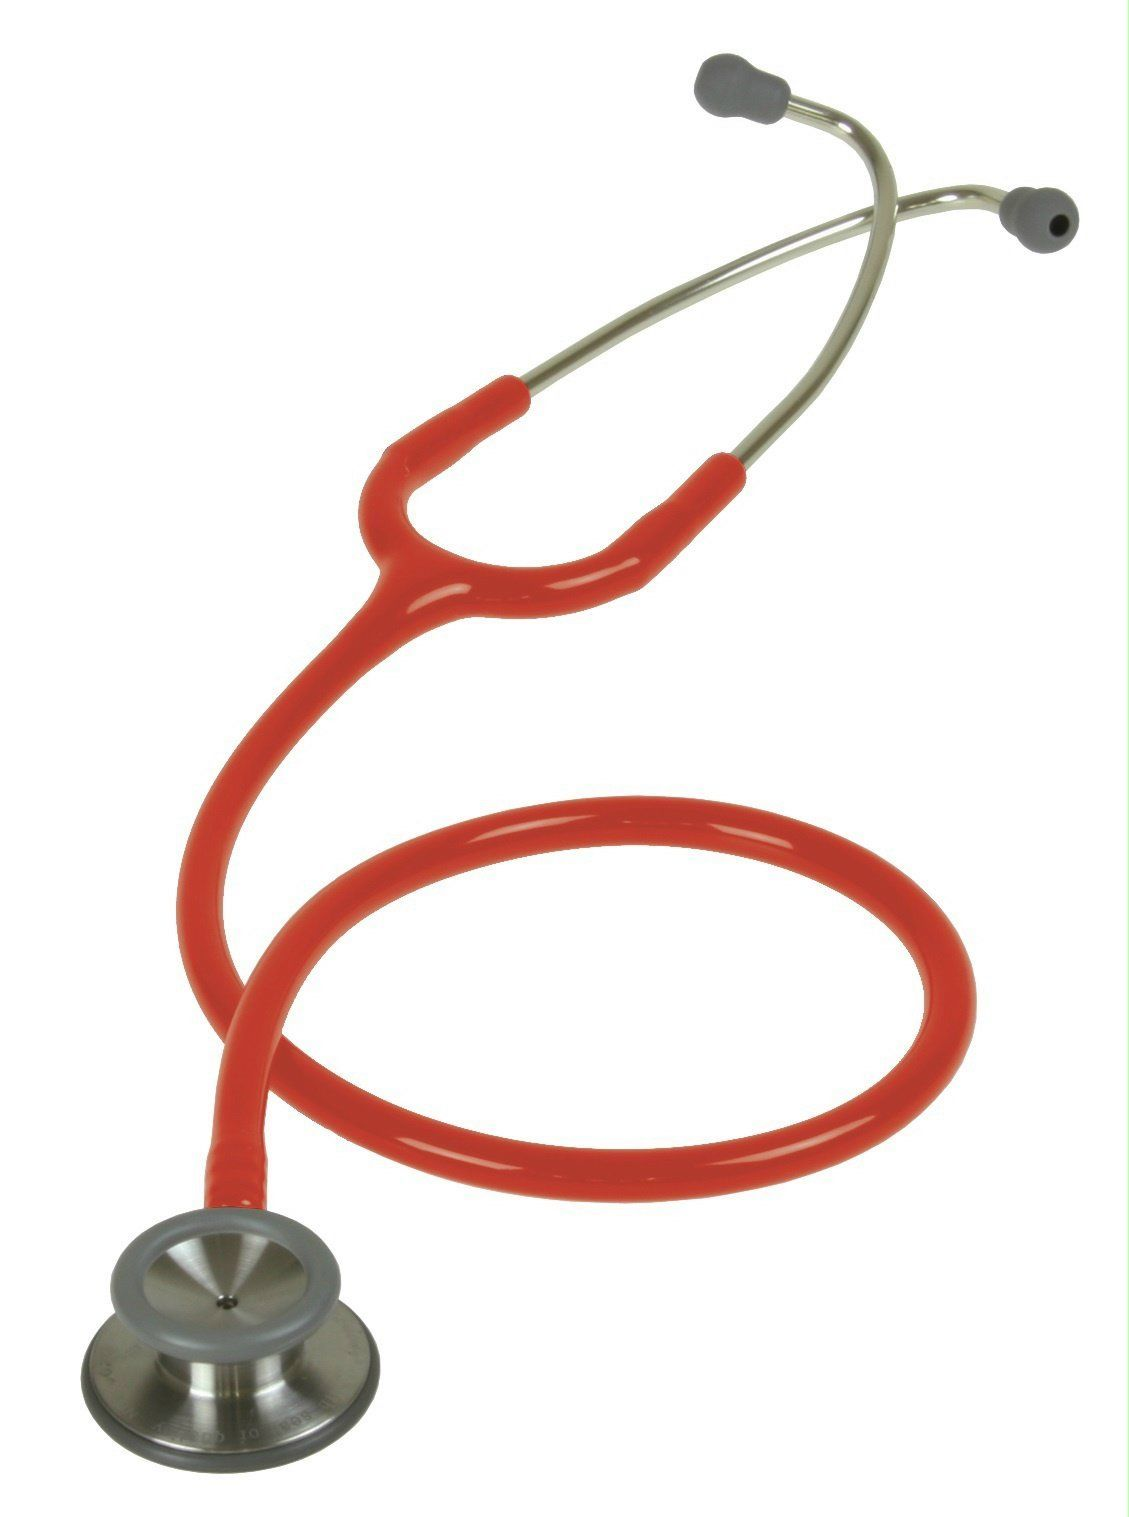 Home Health Care Services May Include Some Medical Equipment